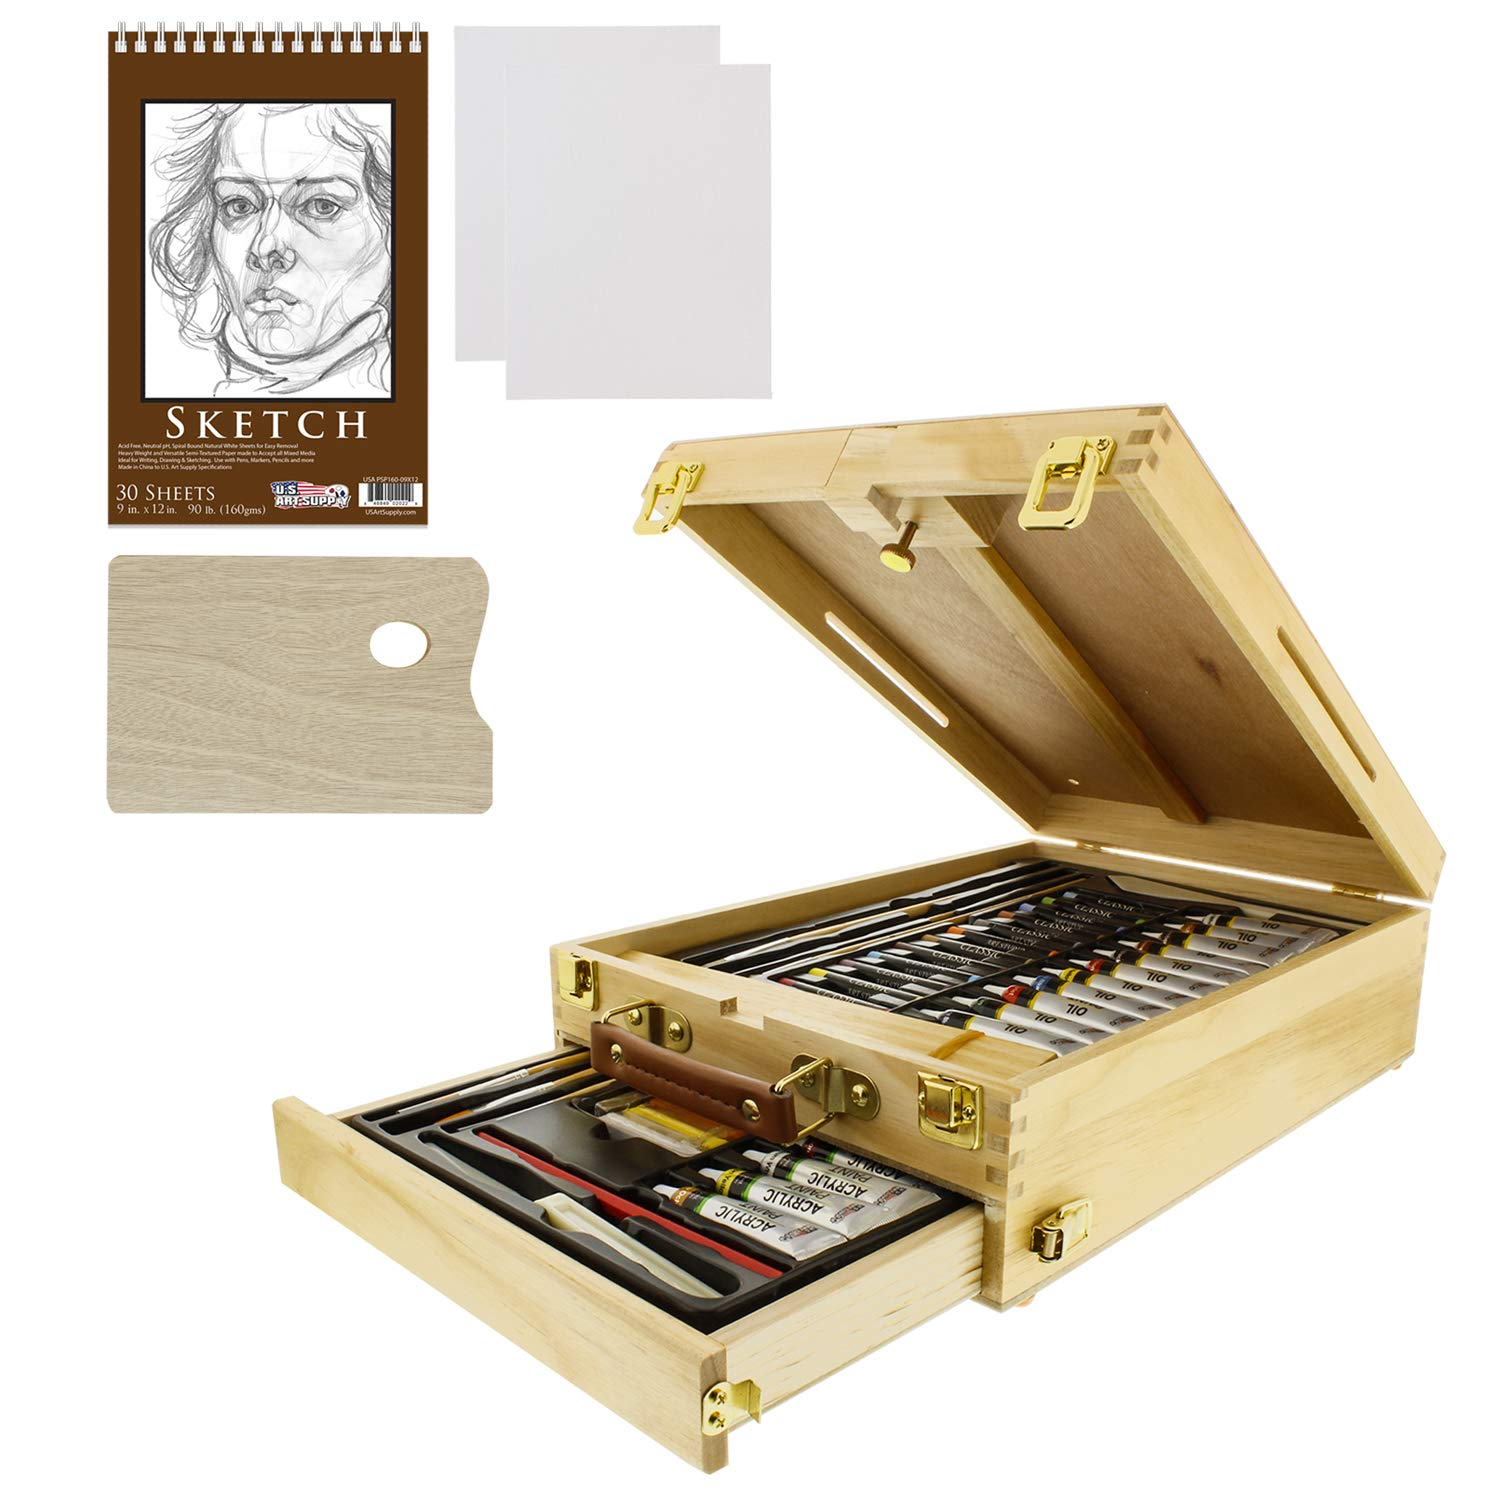 US Art Supply 62-Piece Wood Box Easel Painting Set- Box Easel, Acrylic & Oil Paint Colors, Artist Pastels, Painting Brushes, Wood Palette, Palette Knife, Pencil, Oil Pastels, Canvas Panels, Sketch Pad by US Art Supply